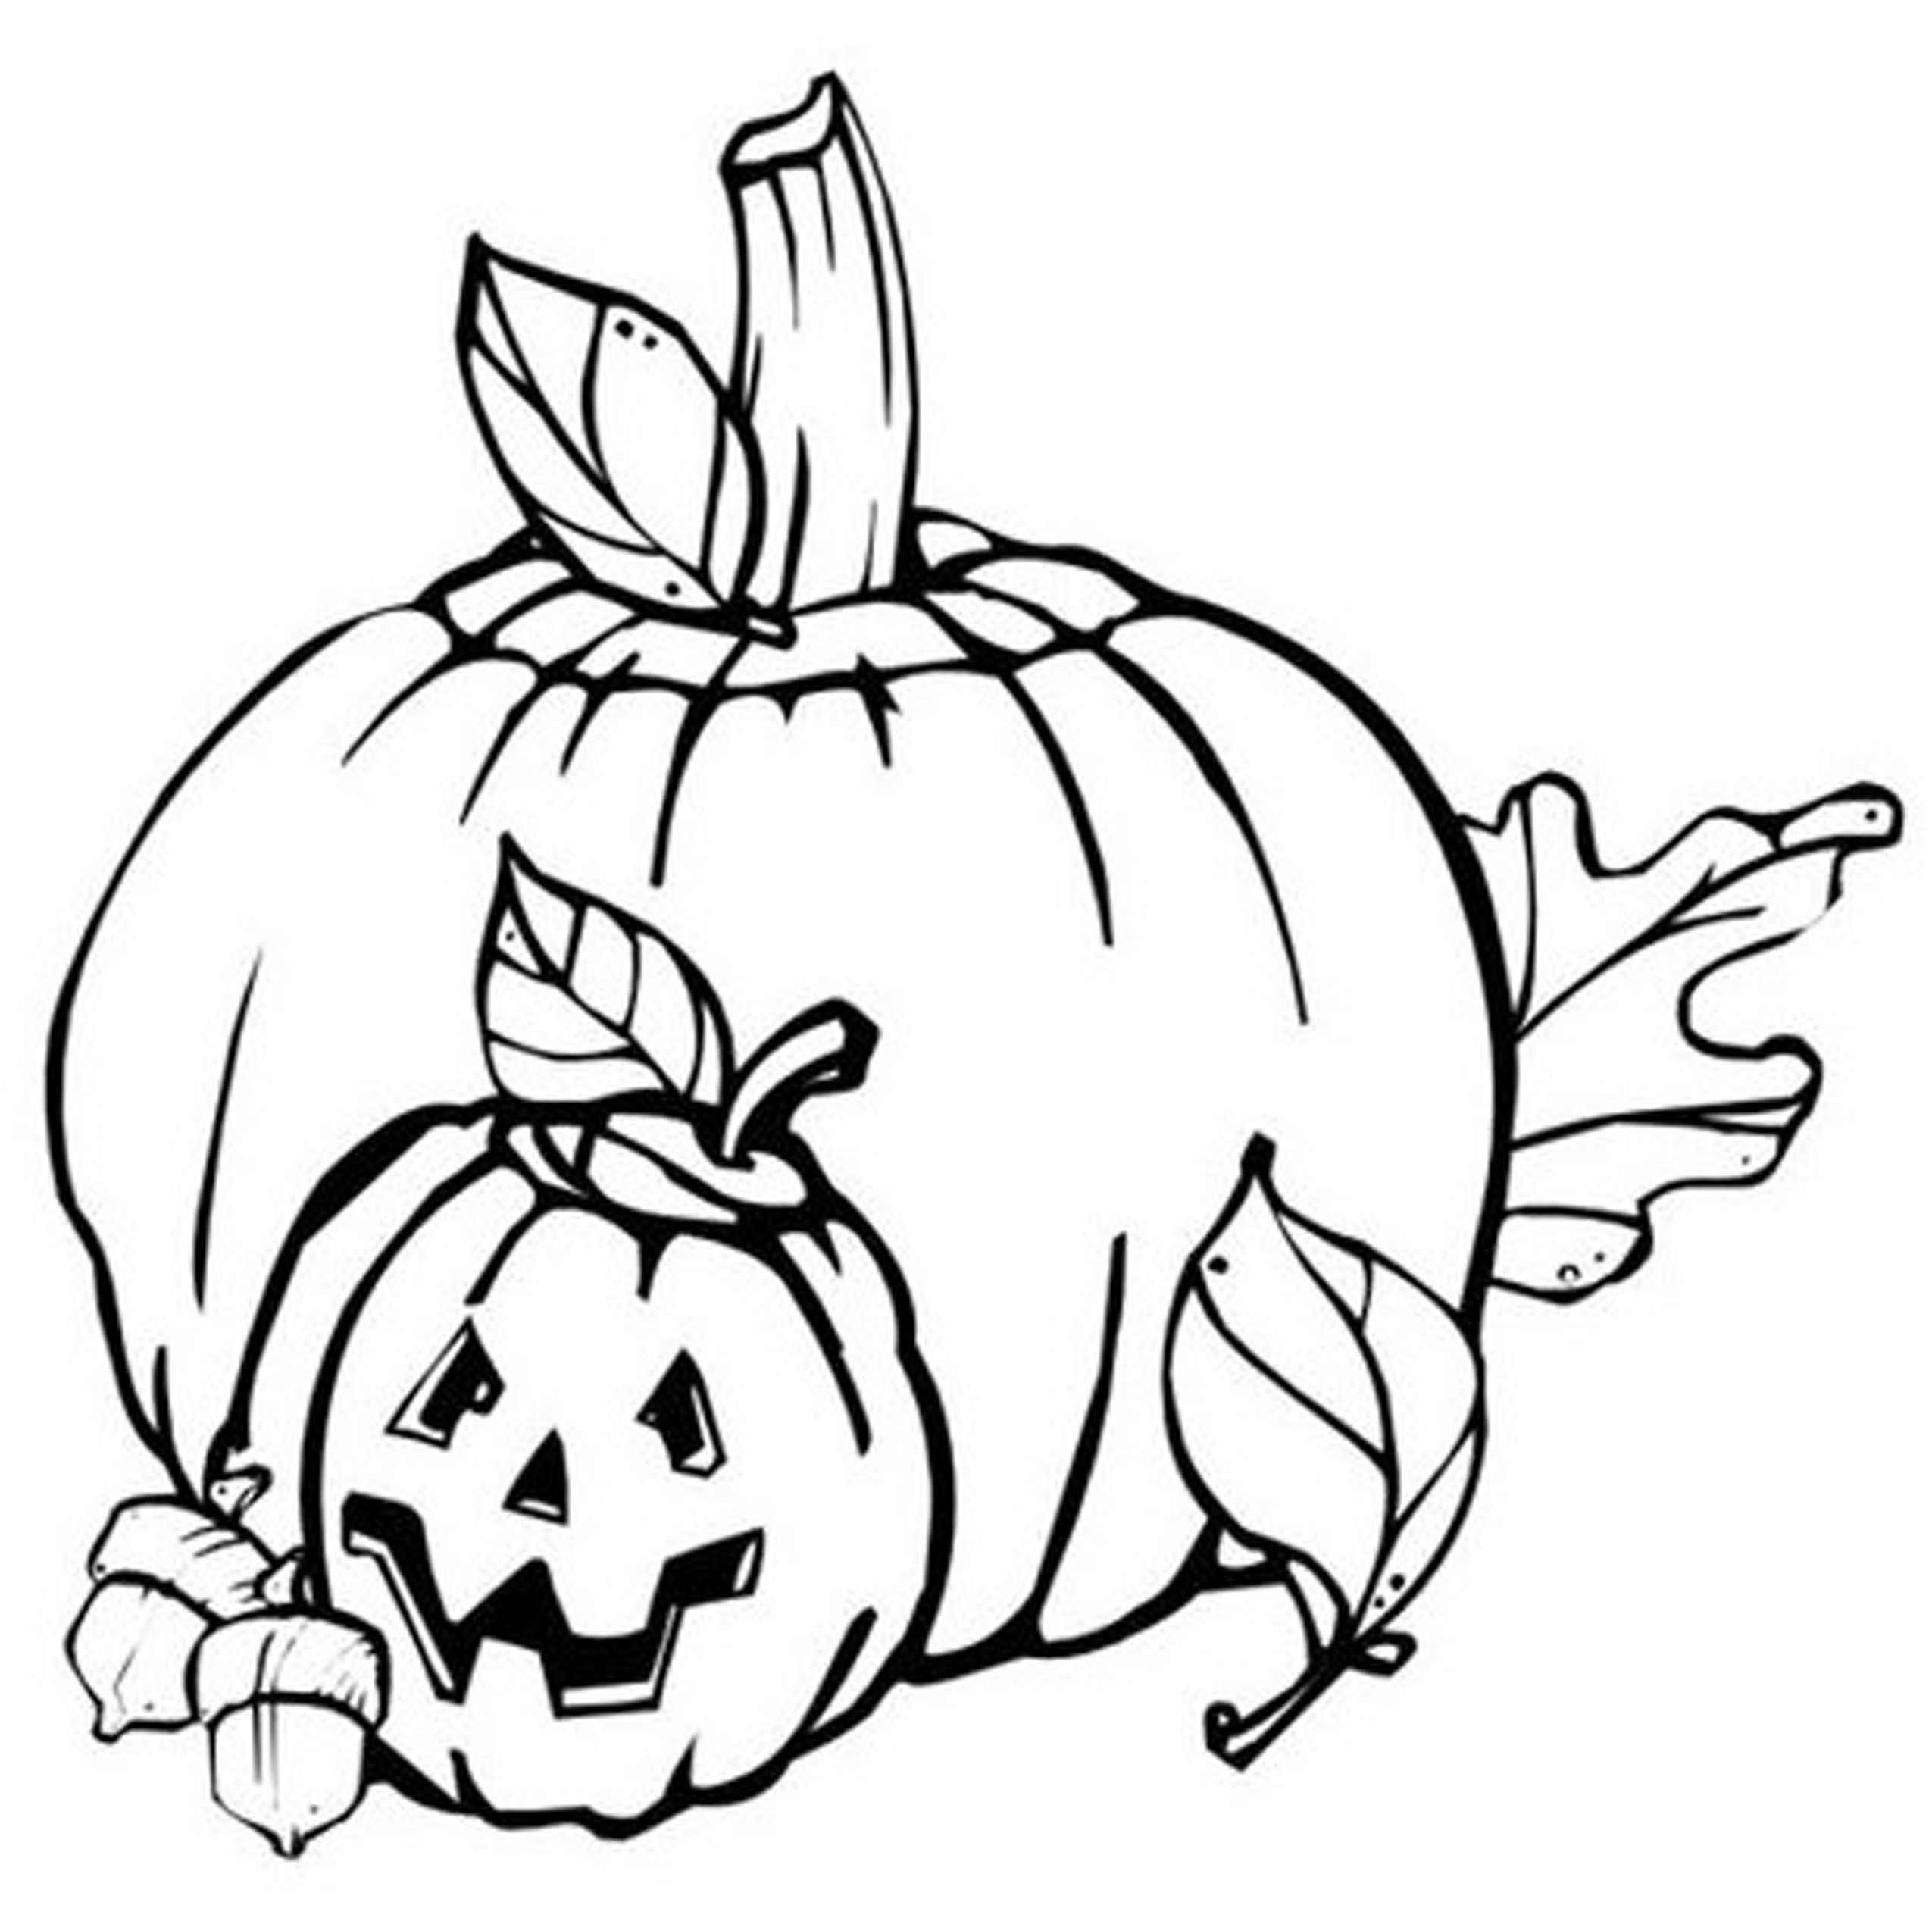 printable coloring book pages | Coloring Pages | Pinterest ...